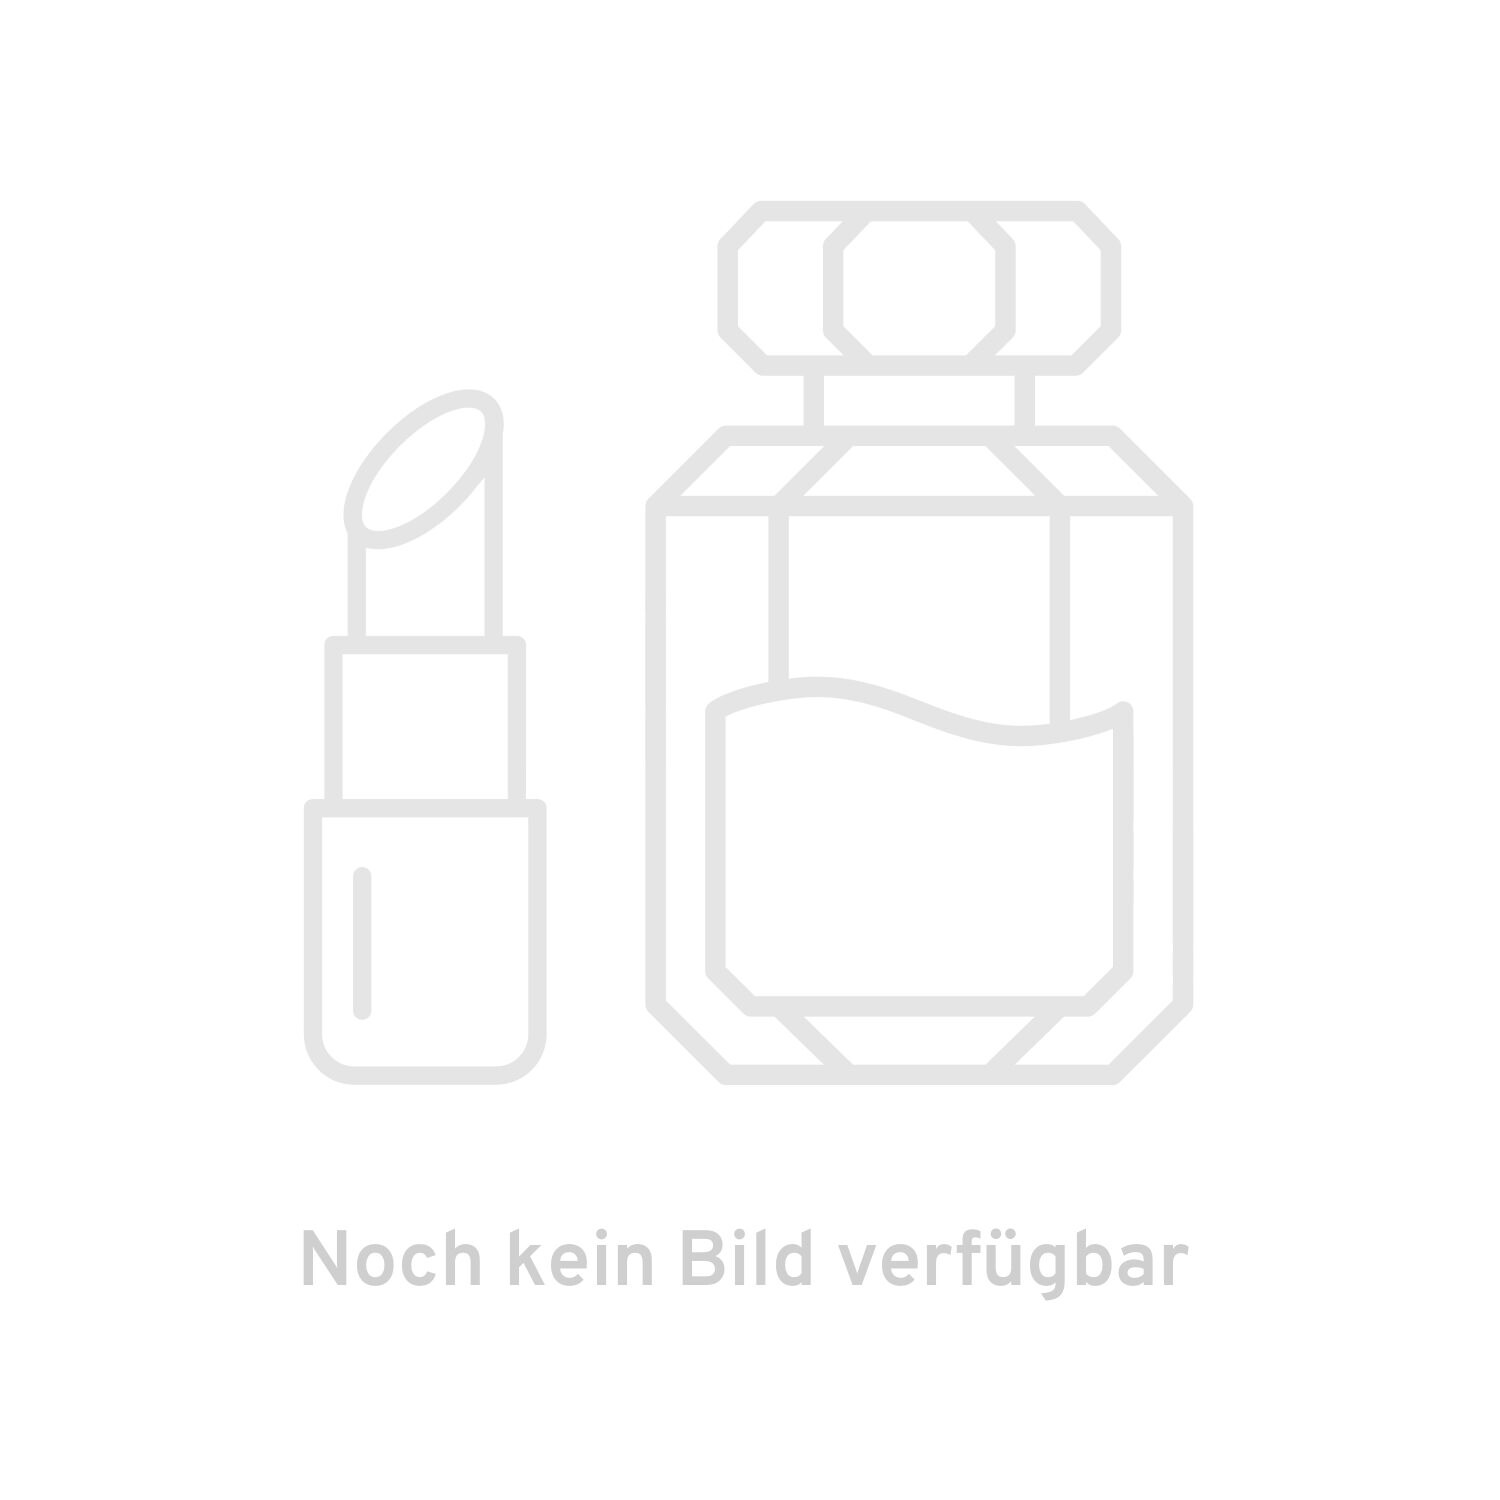 ACQVA E ZVCCHERO Shower Gel